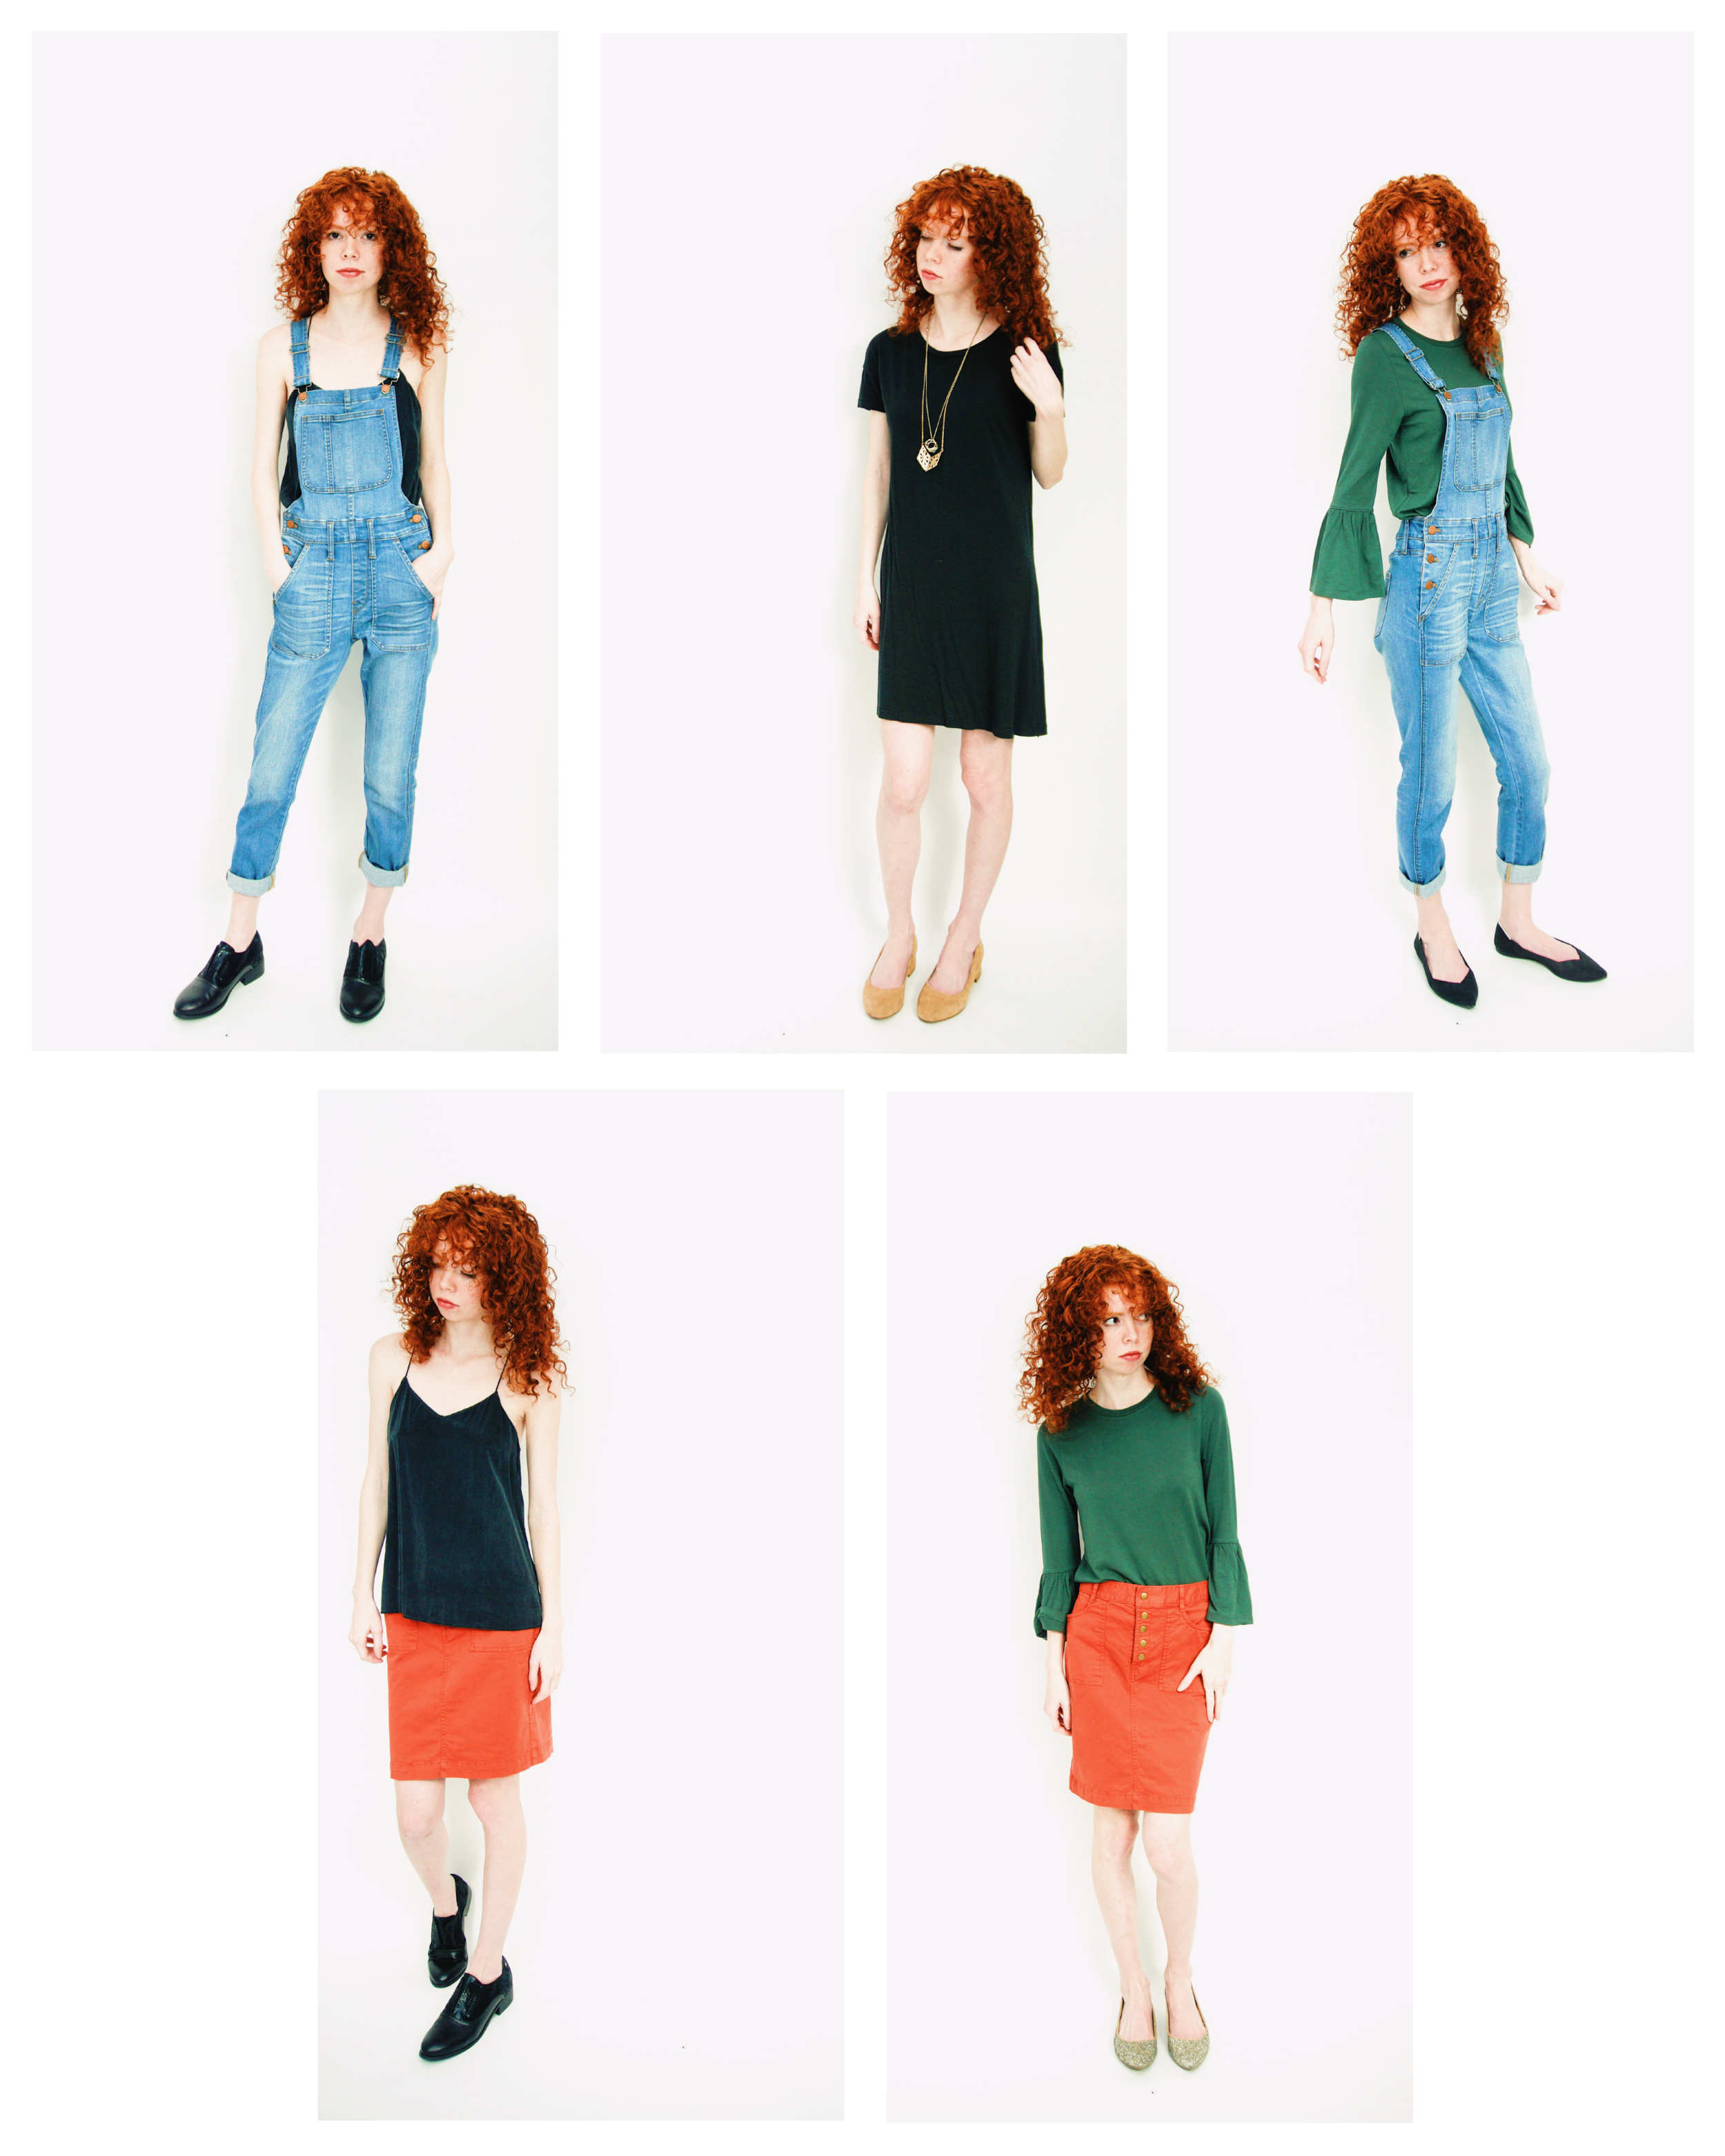 Overalls and Bell Sleeves in Wintry Jewel Tones. The perfect outfit for cutting a Christmas tree or baking cookies!